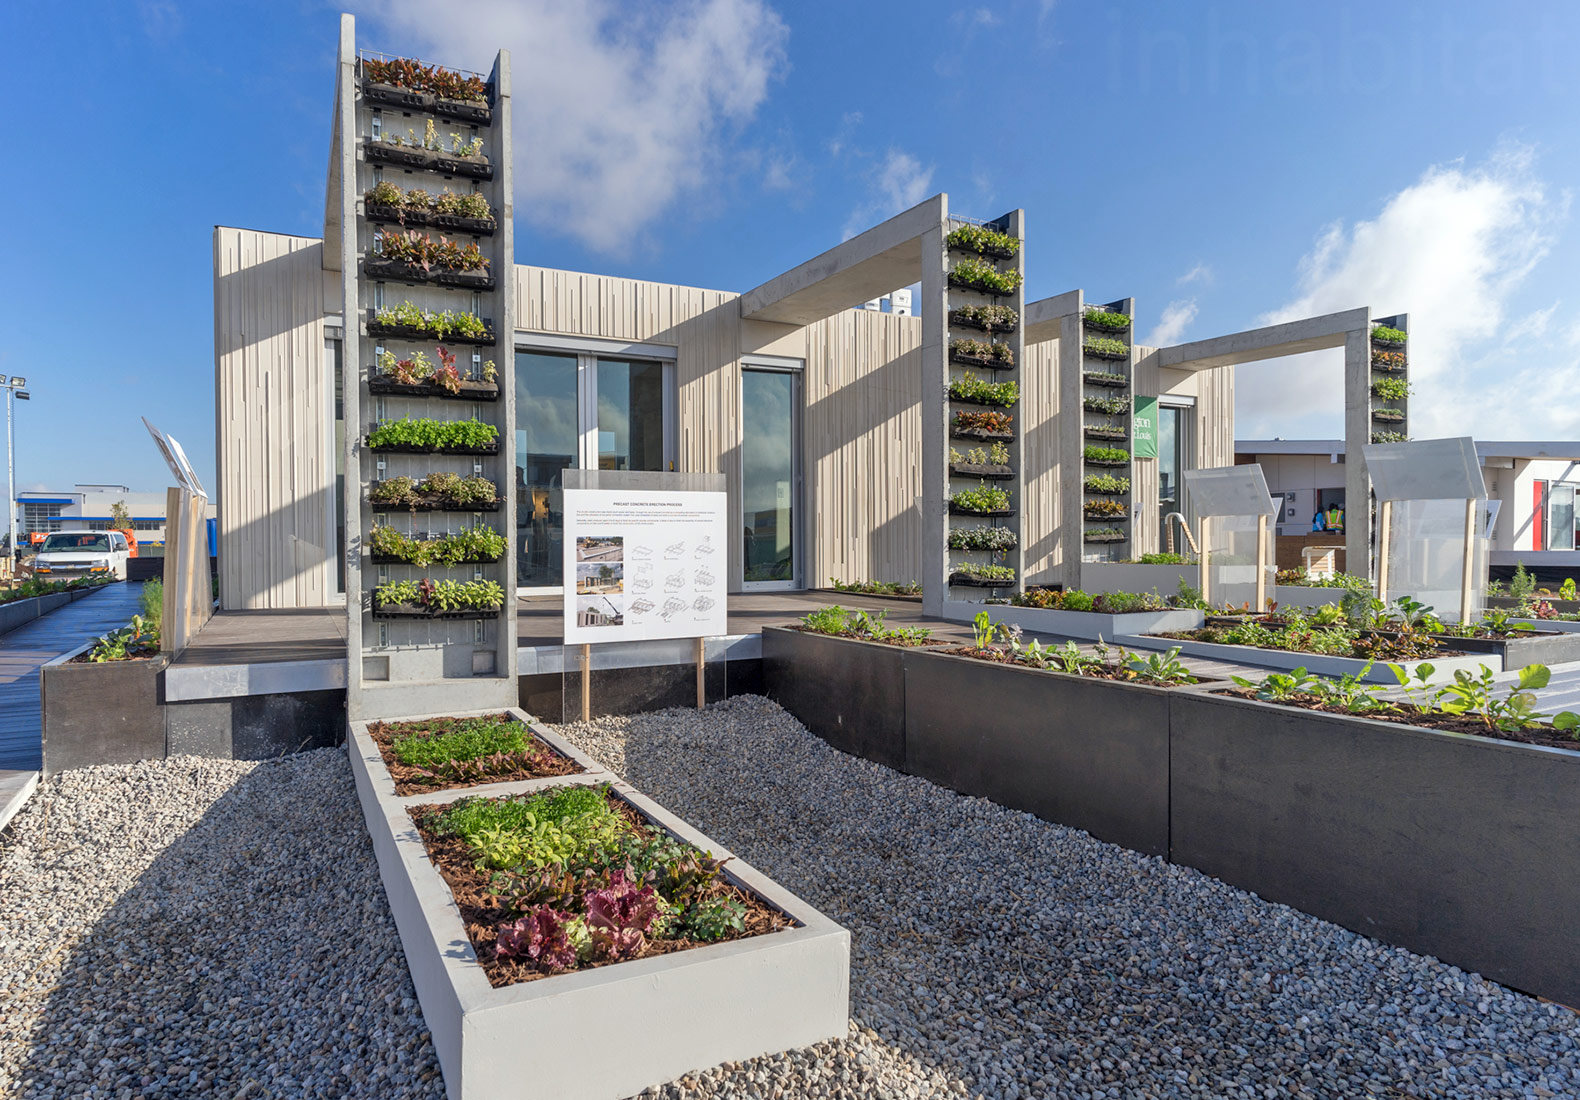 Crete House, Washington University Solar Decathlon, Prefabricated Concrete, Concrete  Homes, Solar Decathlon